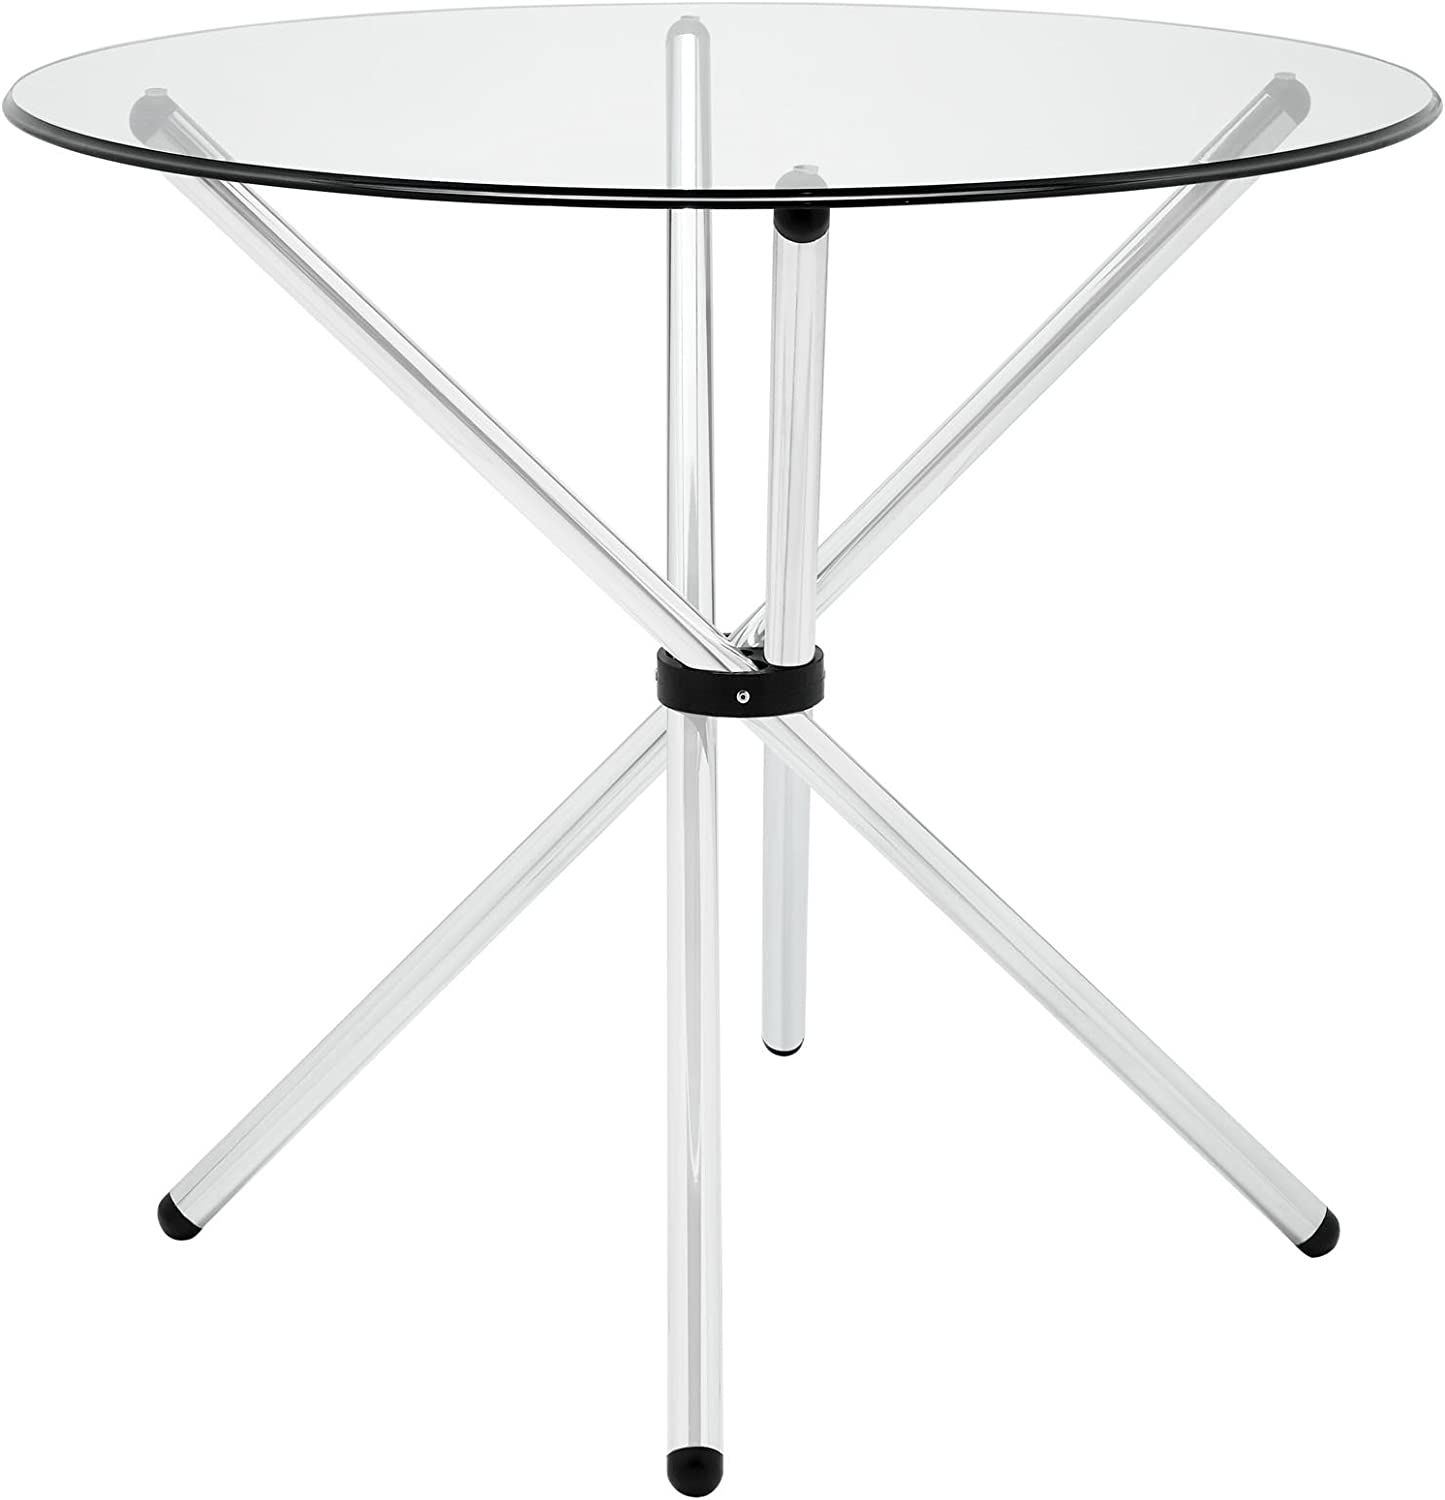 Amazon Com Modway Baton 36 Modern Kitchen And Dining Table With Round Glass Top And Stainless Steel Base Tables